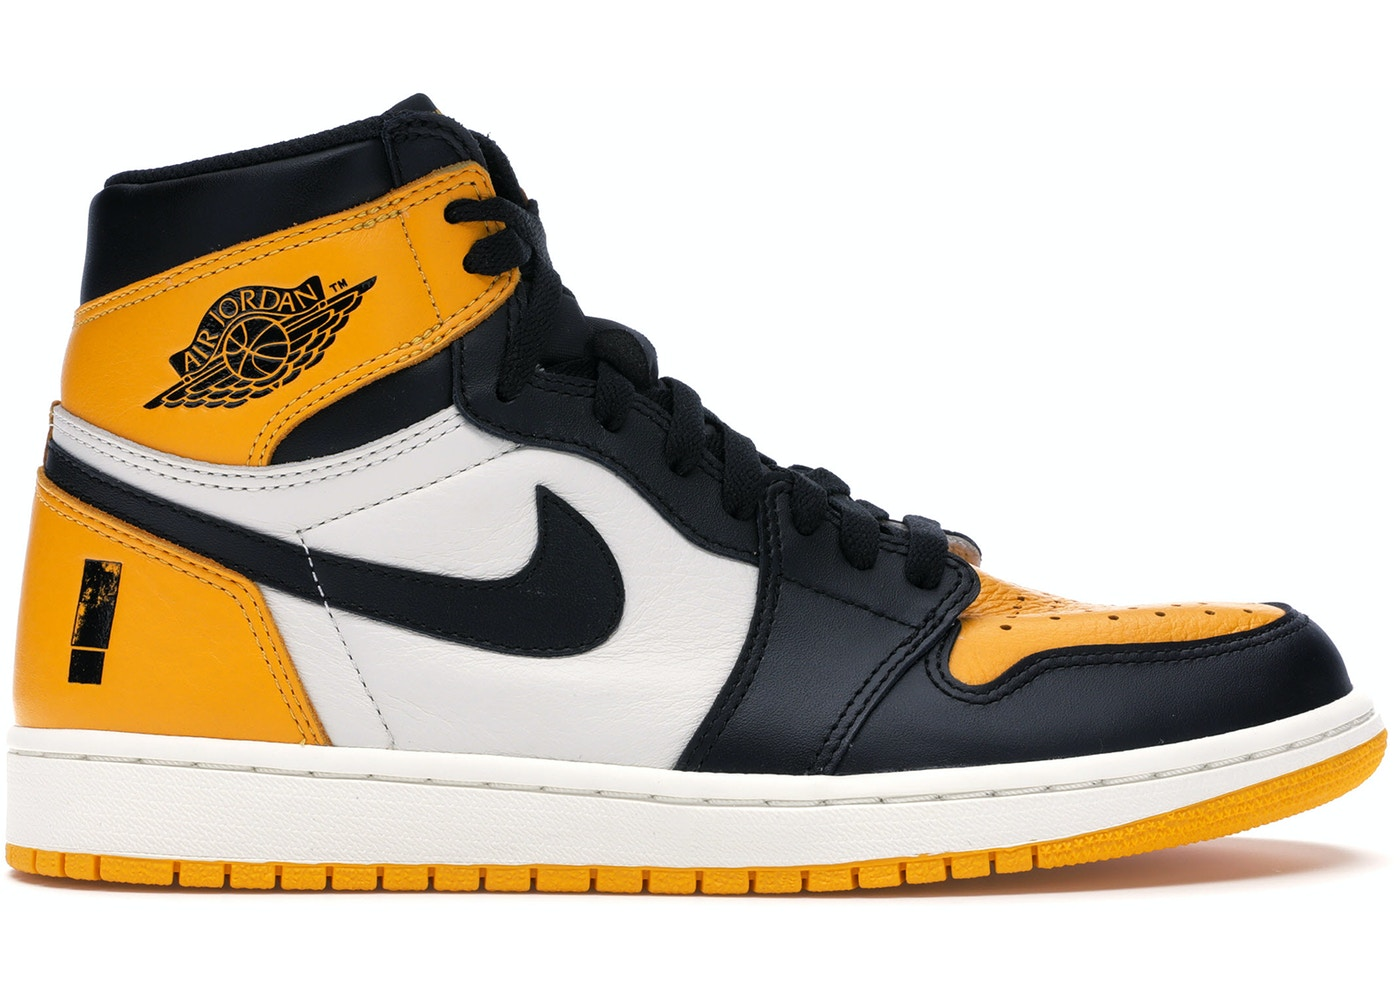 coupon codes hot sale online best sell Jordan 1 Retro High Shinedown Attention Attention PE - Sneakers